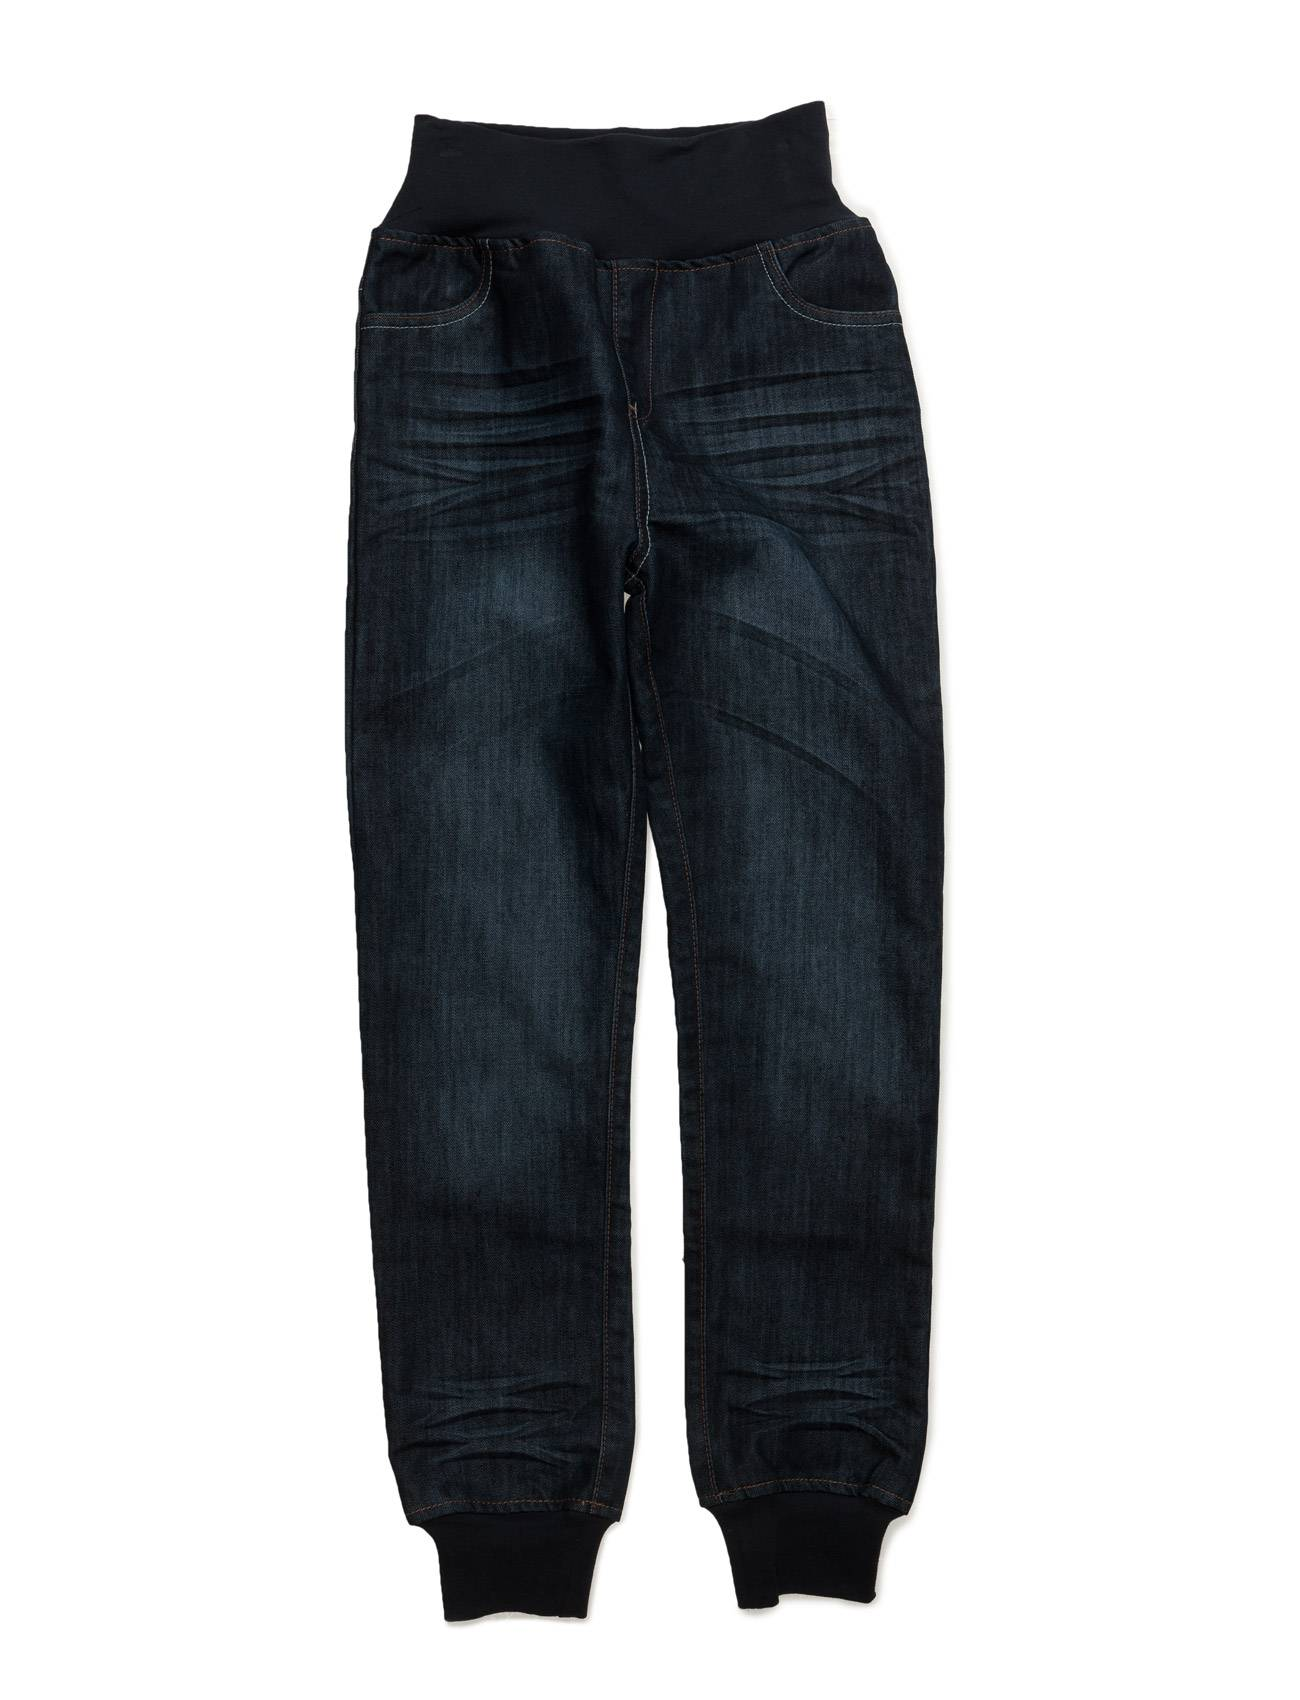 NOVA STAR Denim Original Washed